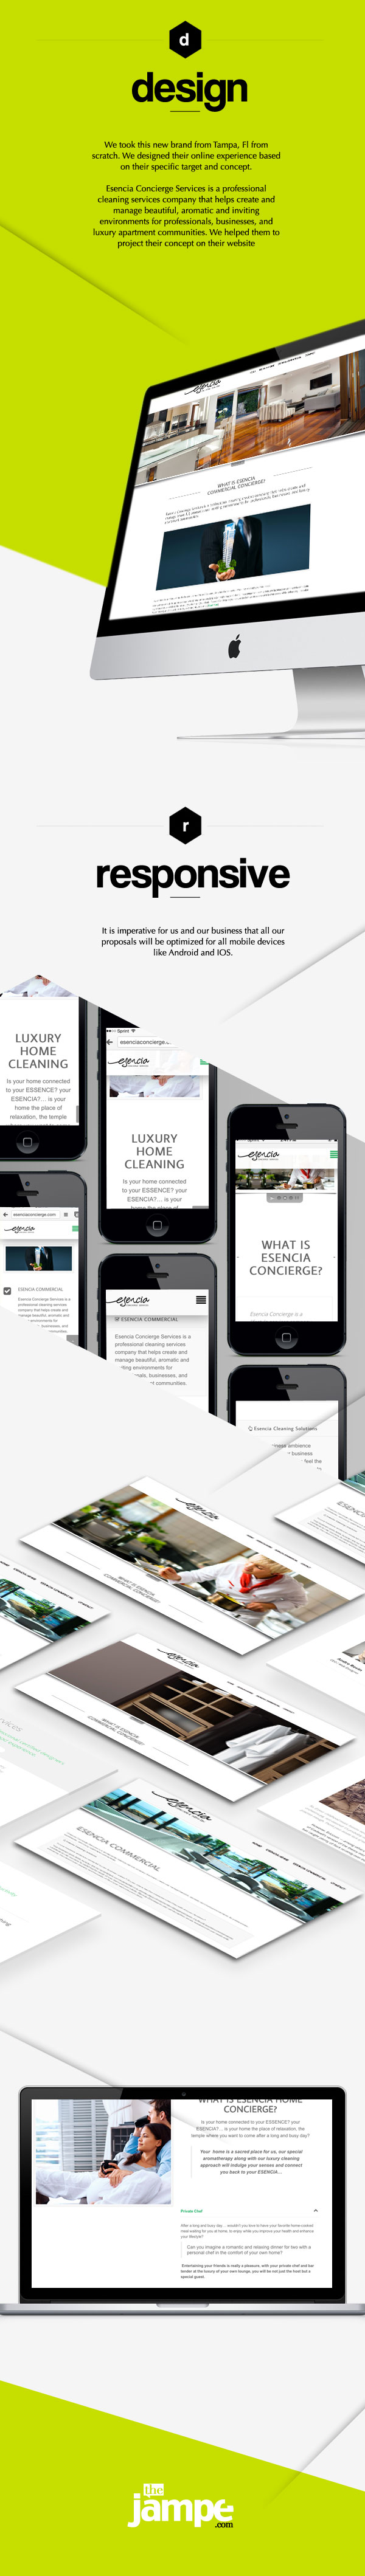 Case-study-web-cleaning-tampa-esencia-concierge-design-copy-coll-web